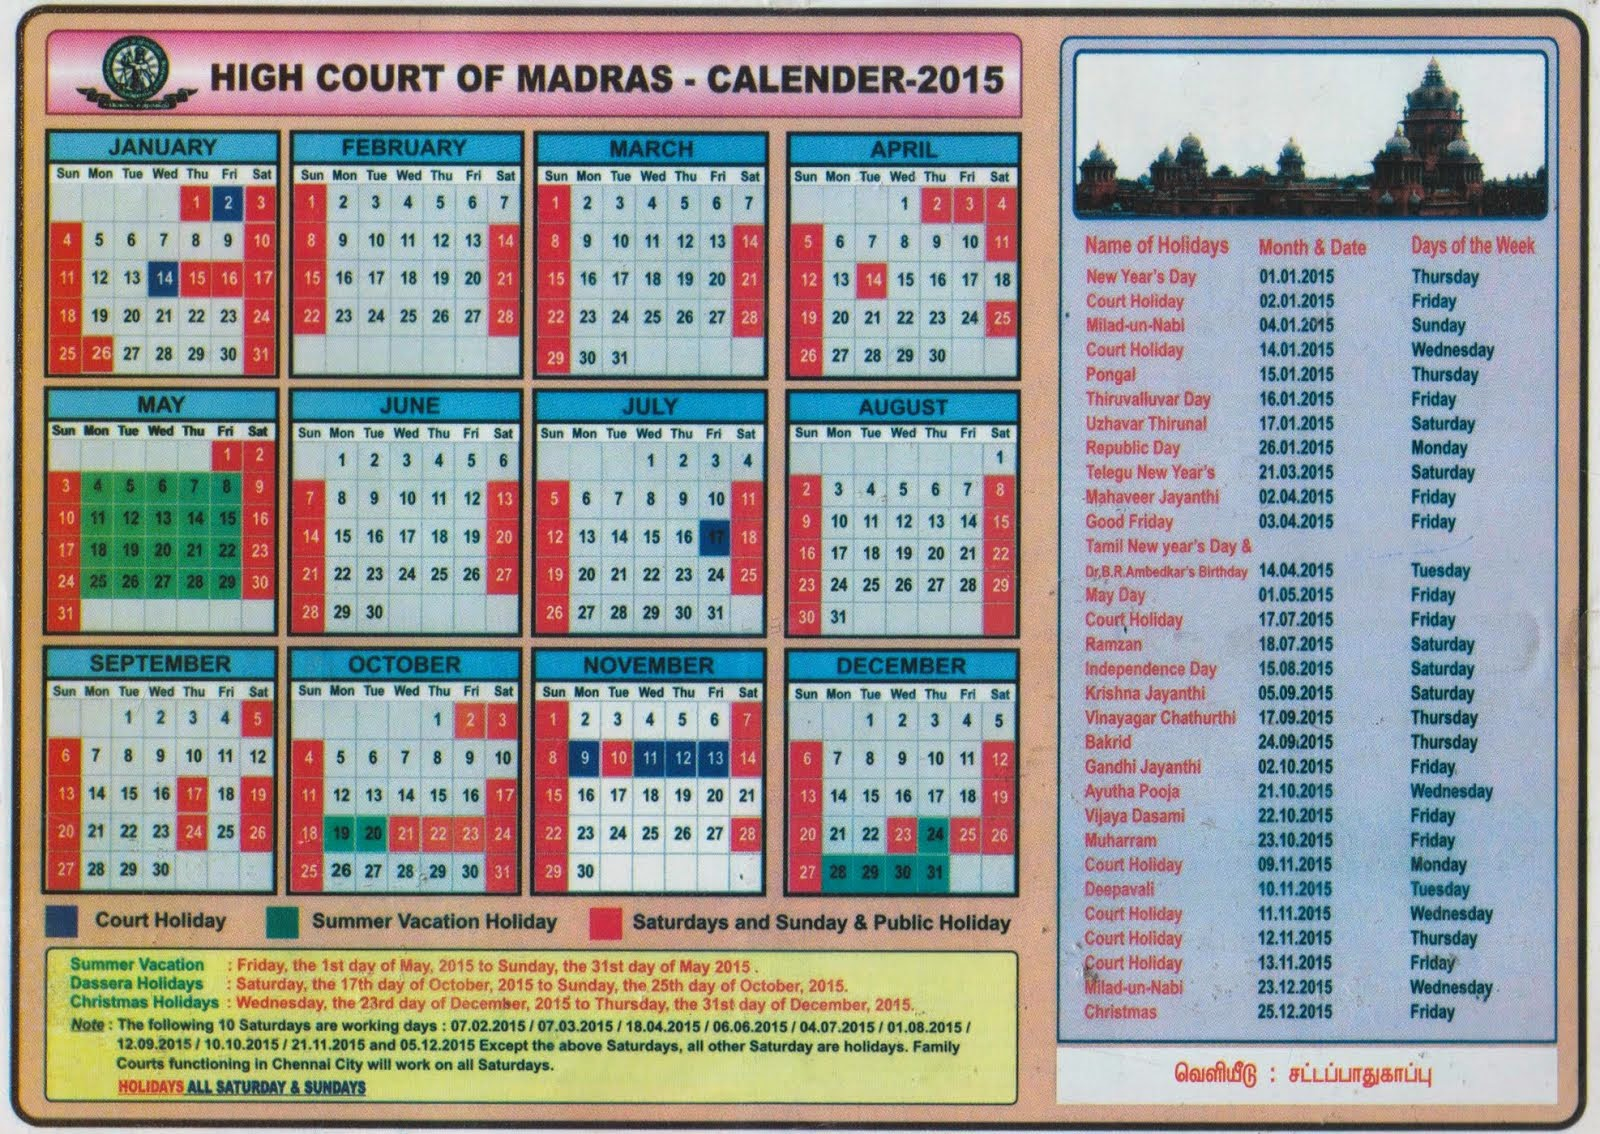 Madras High Court Calendar 2015